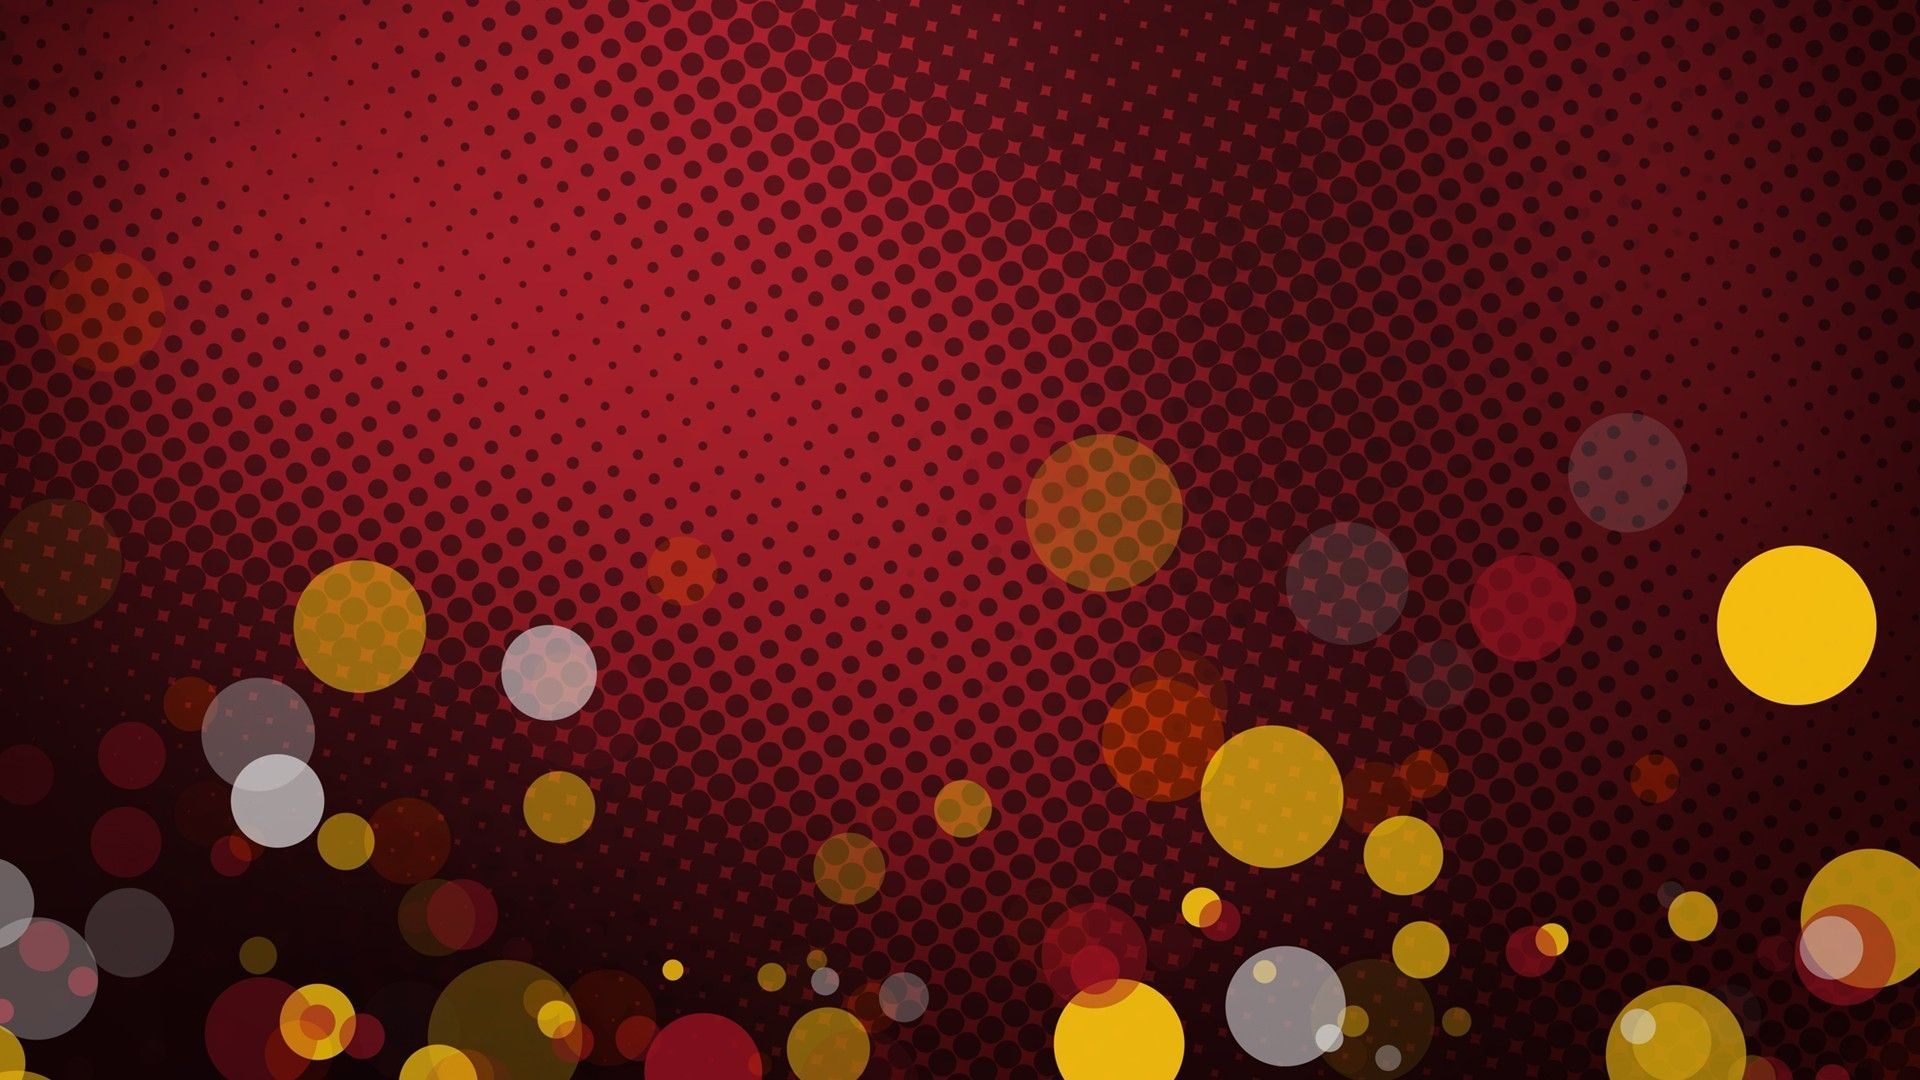 1920x1080 Vector Background Design Red Hd